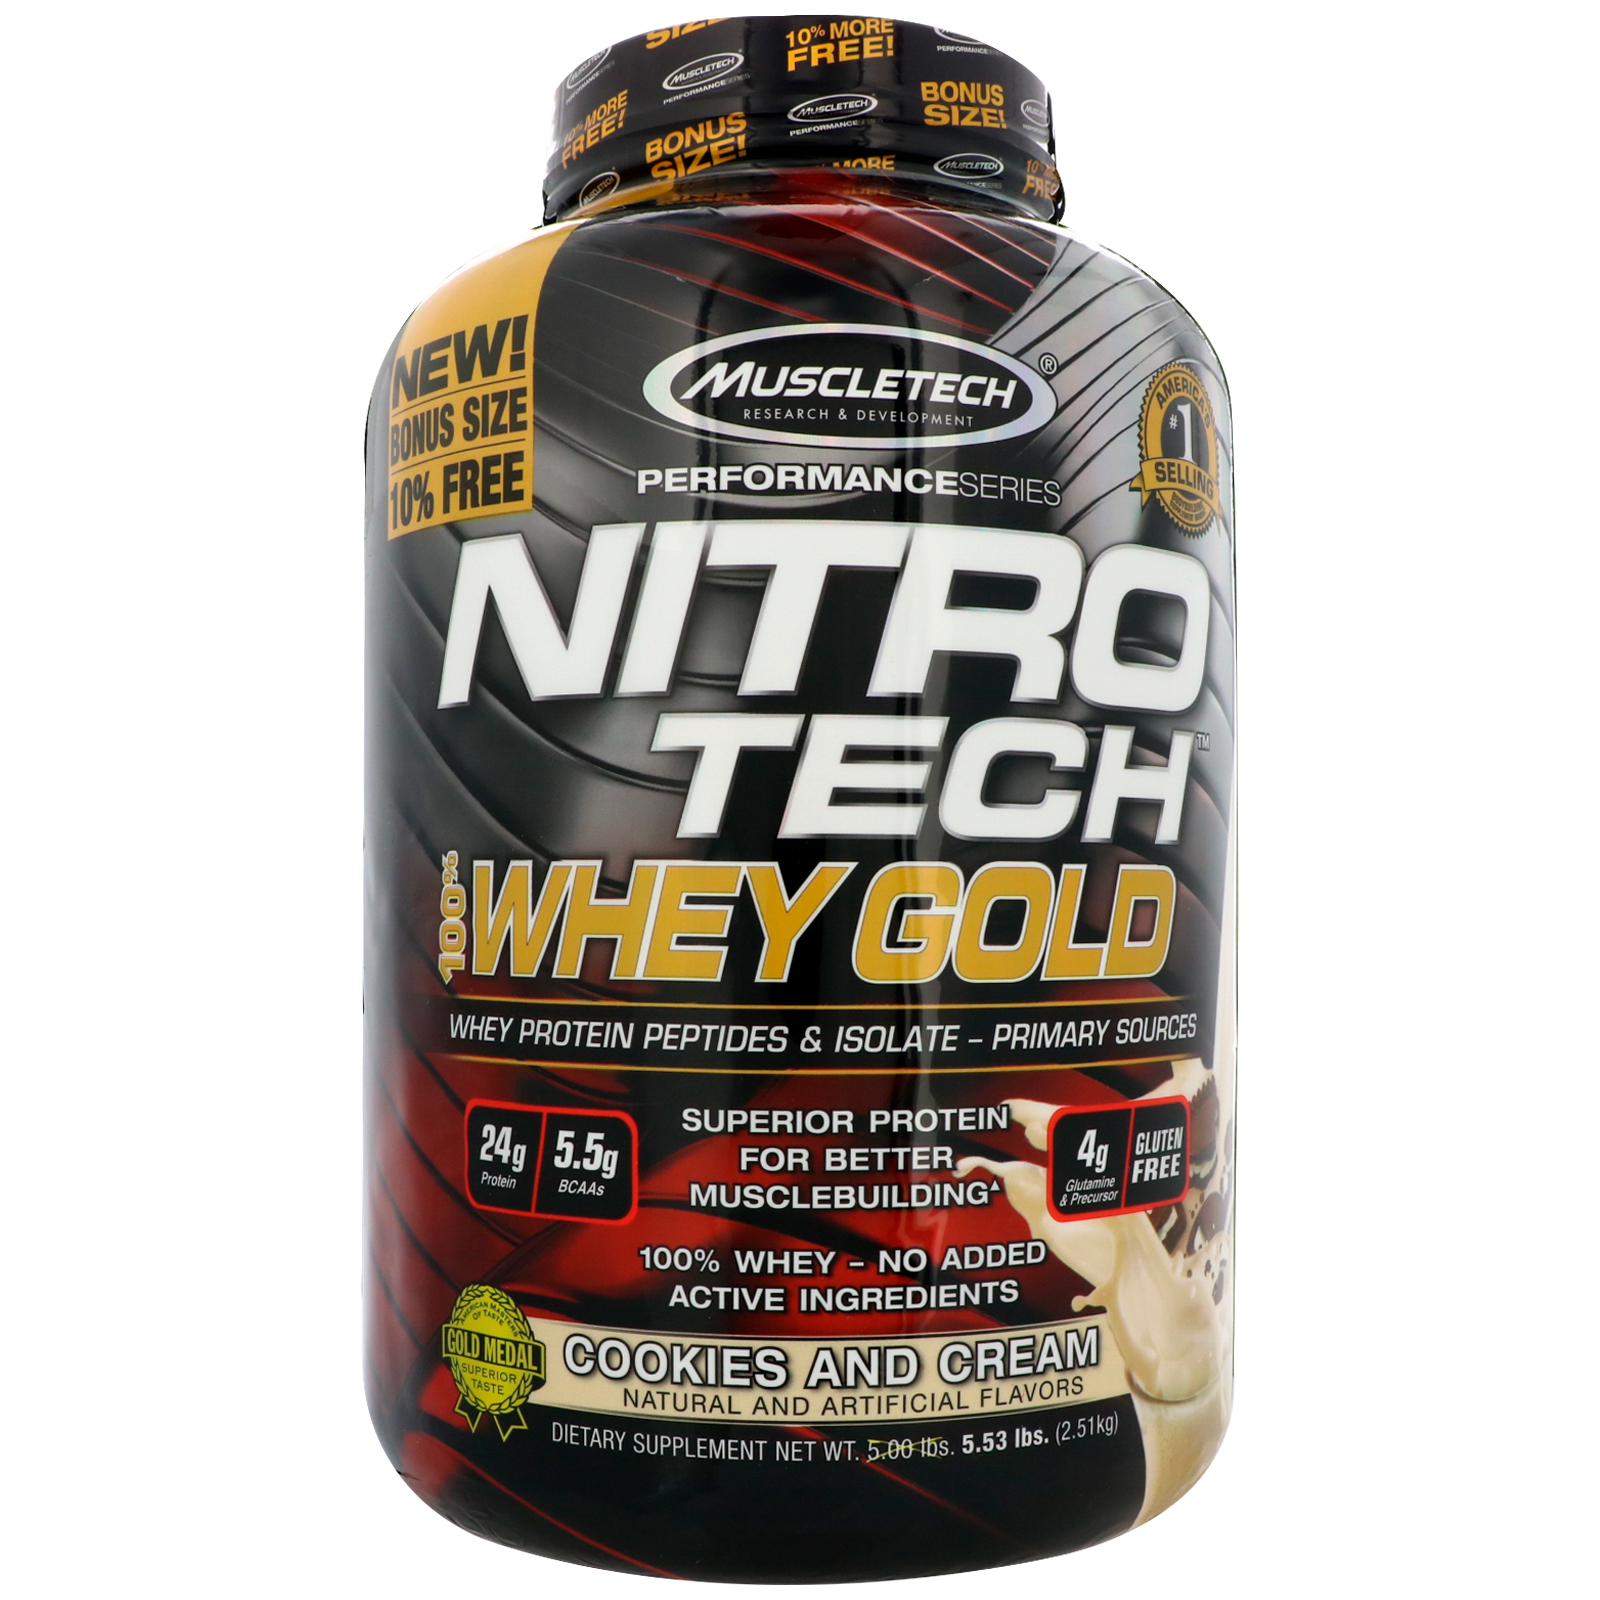 Muscletech Nitro Tech 100 Whey Gold Cookies And Cream 553 Lbs Ultimate Nutrition Iso Mass Xtreme Gainer 10 Chocolate